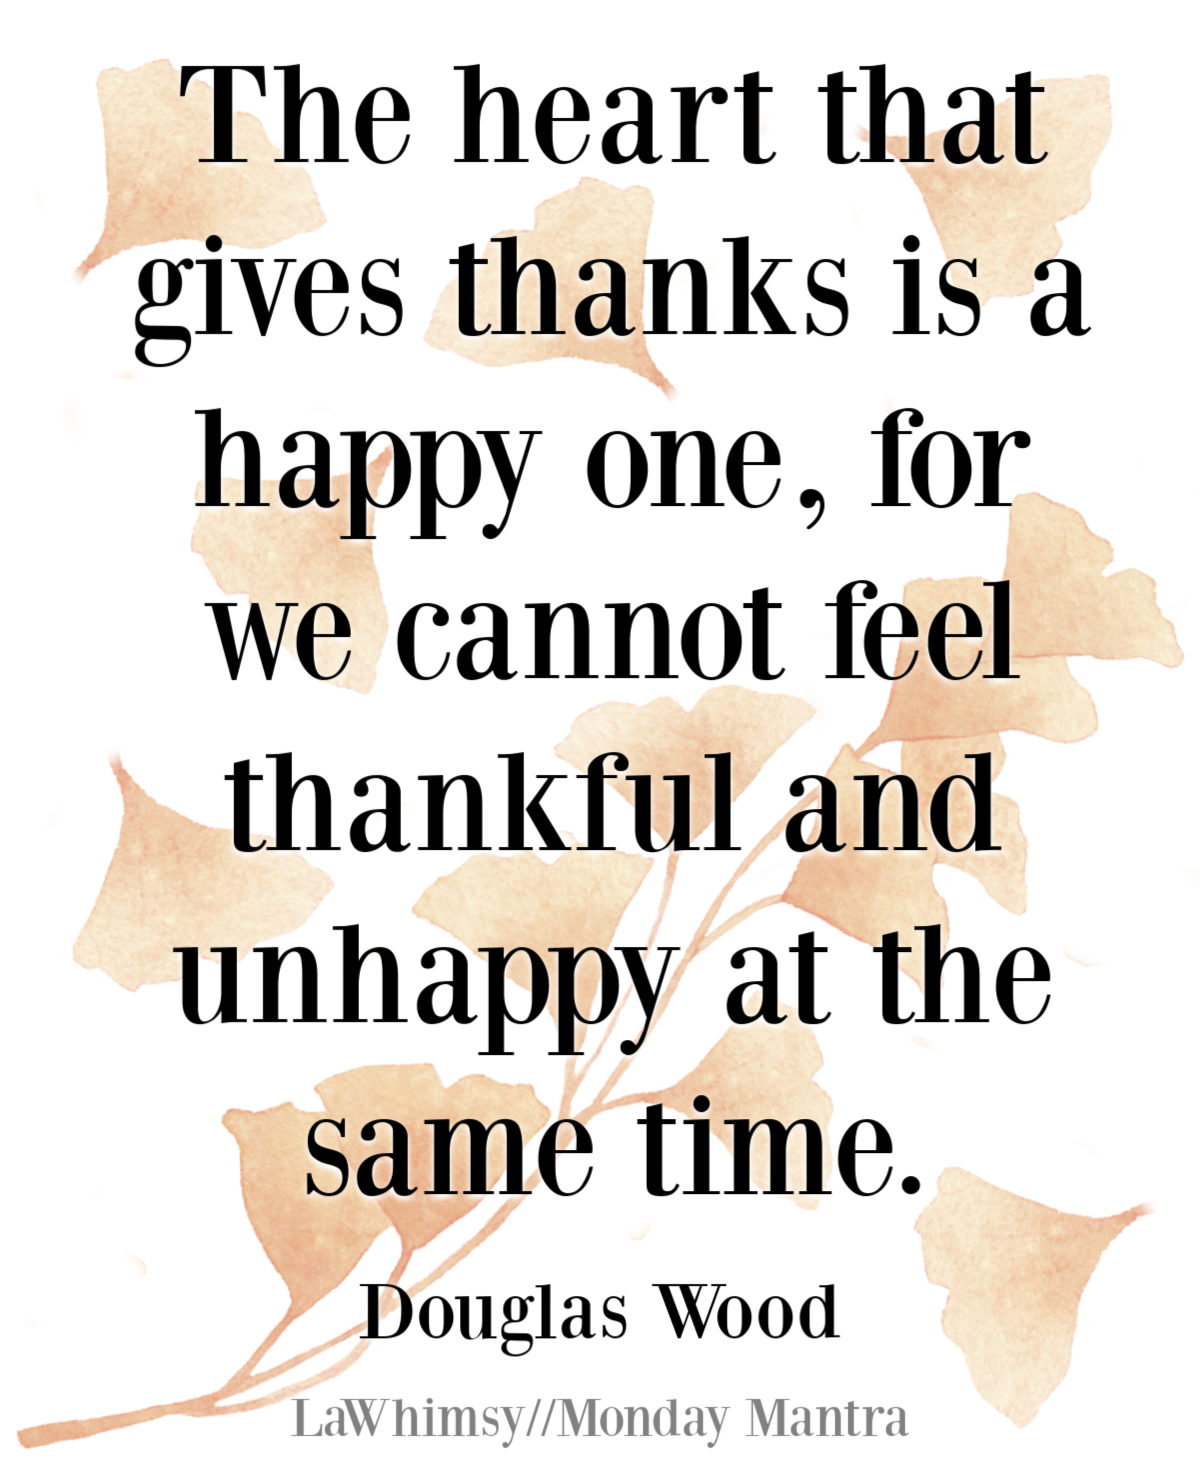 The heart that gives thanks is a happy one, for we cannot feel thankful and unhappy at the same time Douglas Wood quote Monday Mantra 285 via LaWhimsy